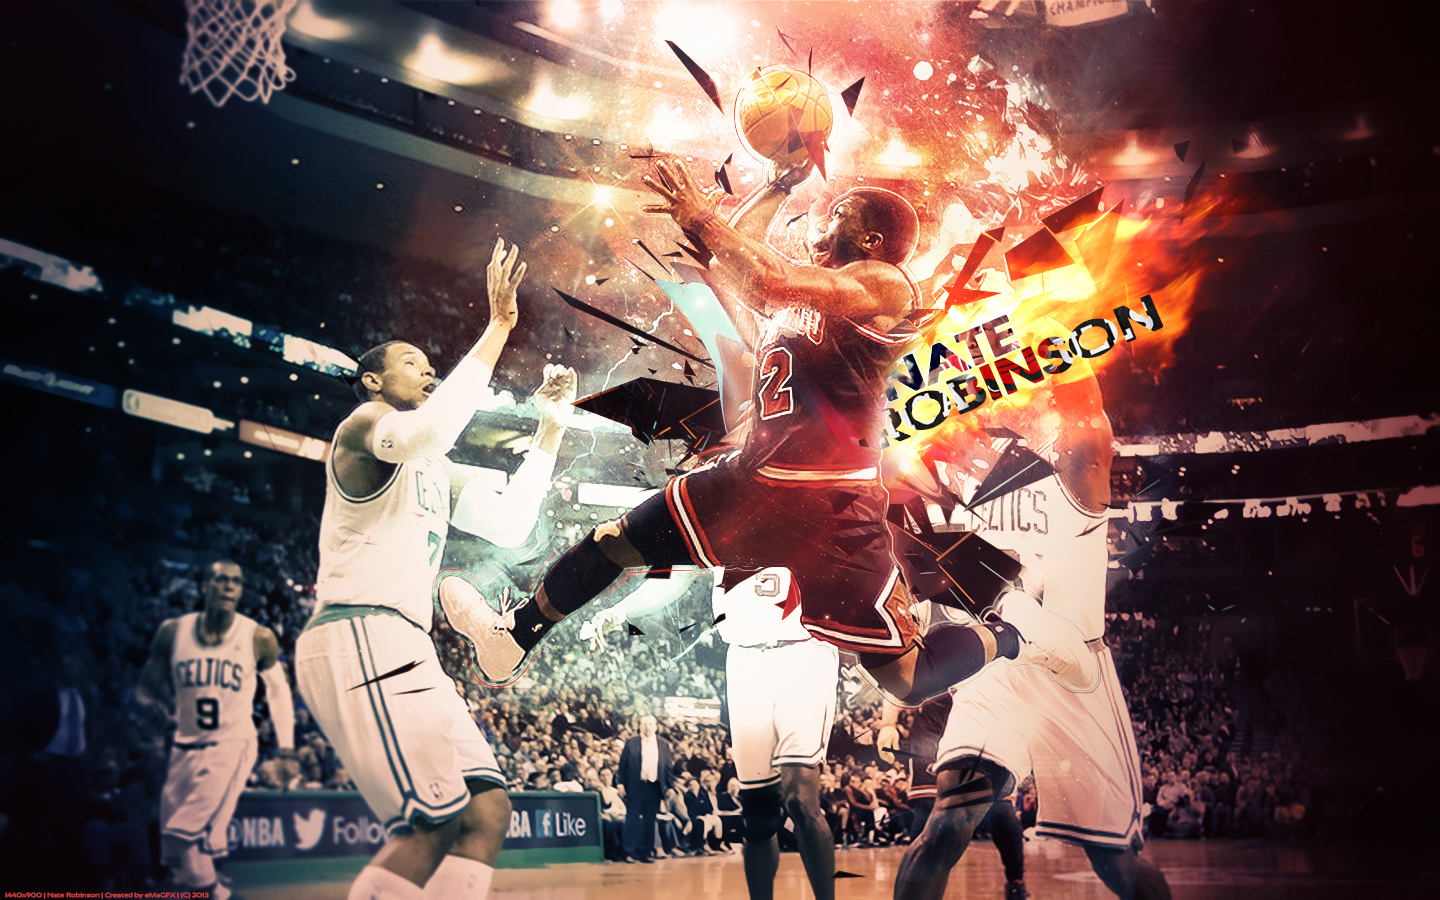 Nate Robinson Nuggets Wallpaper | www.imgkid.com - The ...